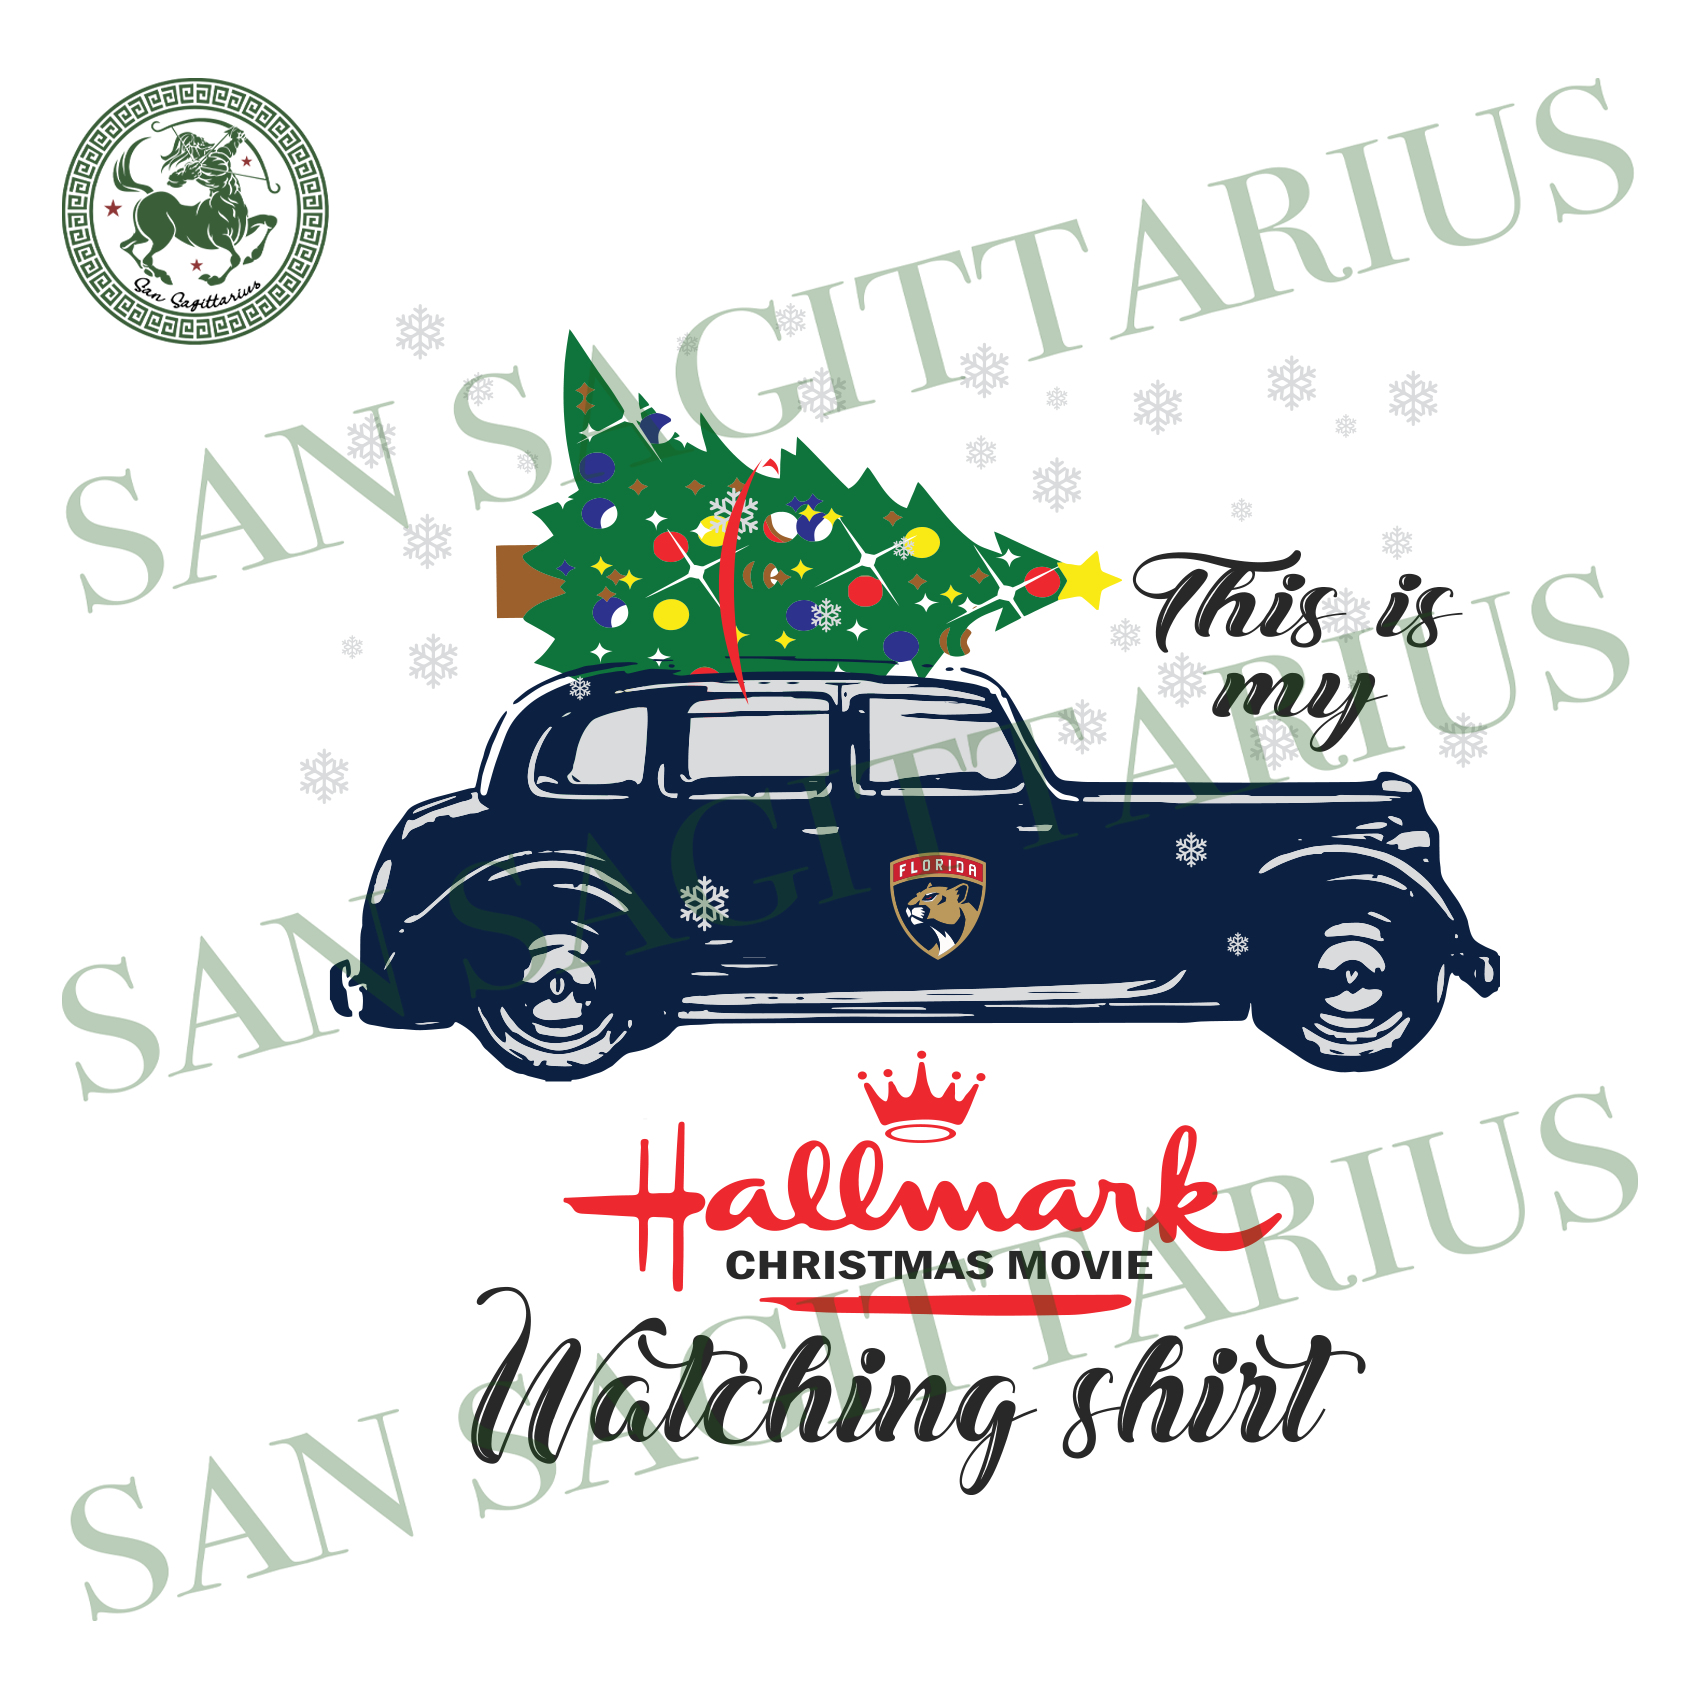 Florida Panthers This Is My Hallmark Christmas Movie Watching Shirt, Sport Svg, Christmas Svg, Florida Panthers Svg, NHL Sport Svg, Florida Panthers NHL Svg, Florida Panthers NHL Gift, Hockey